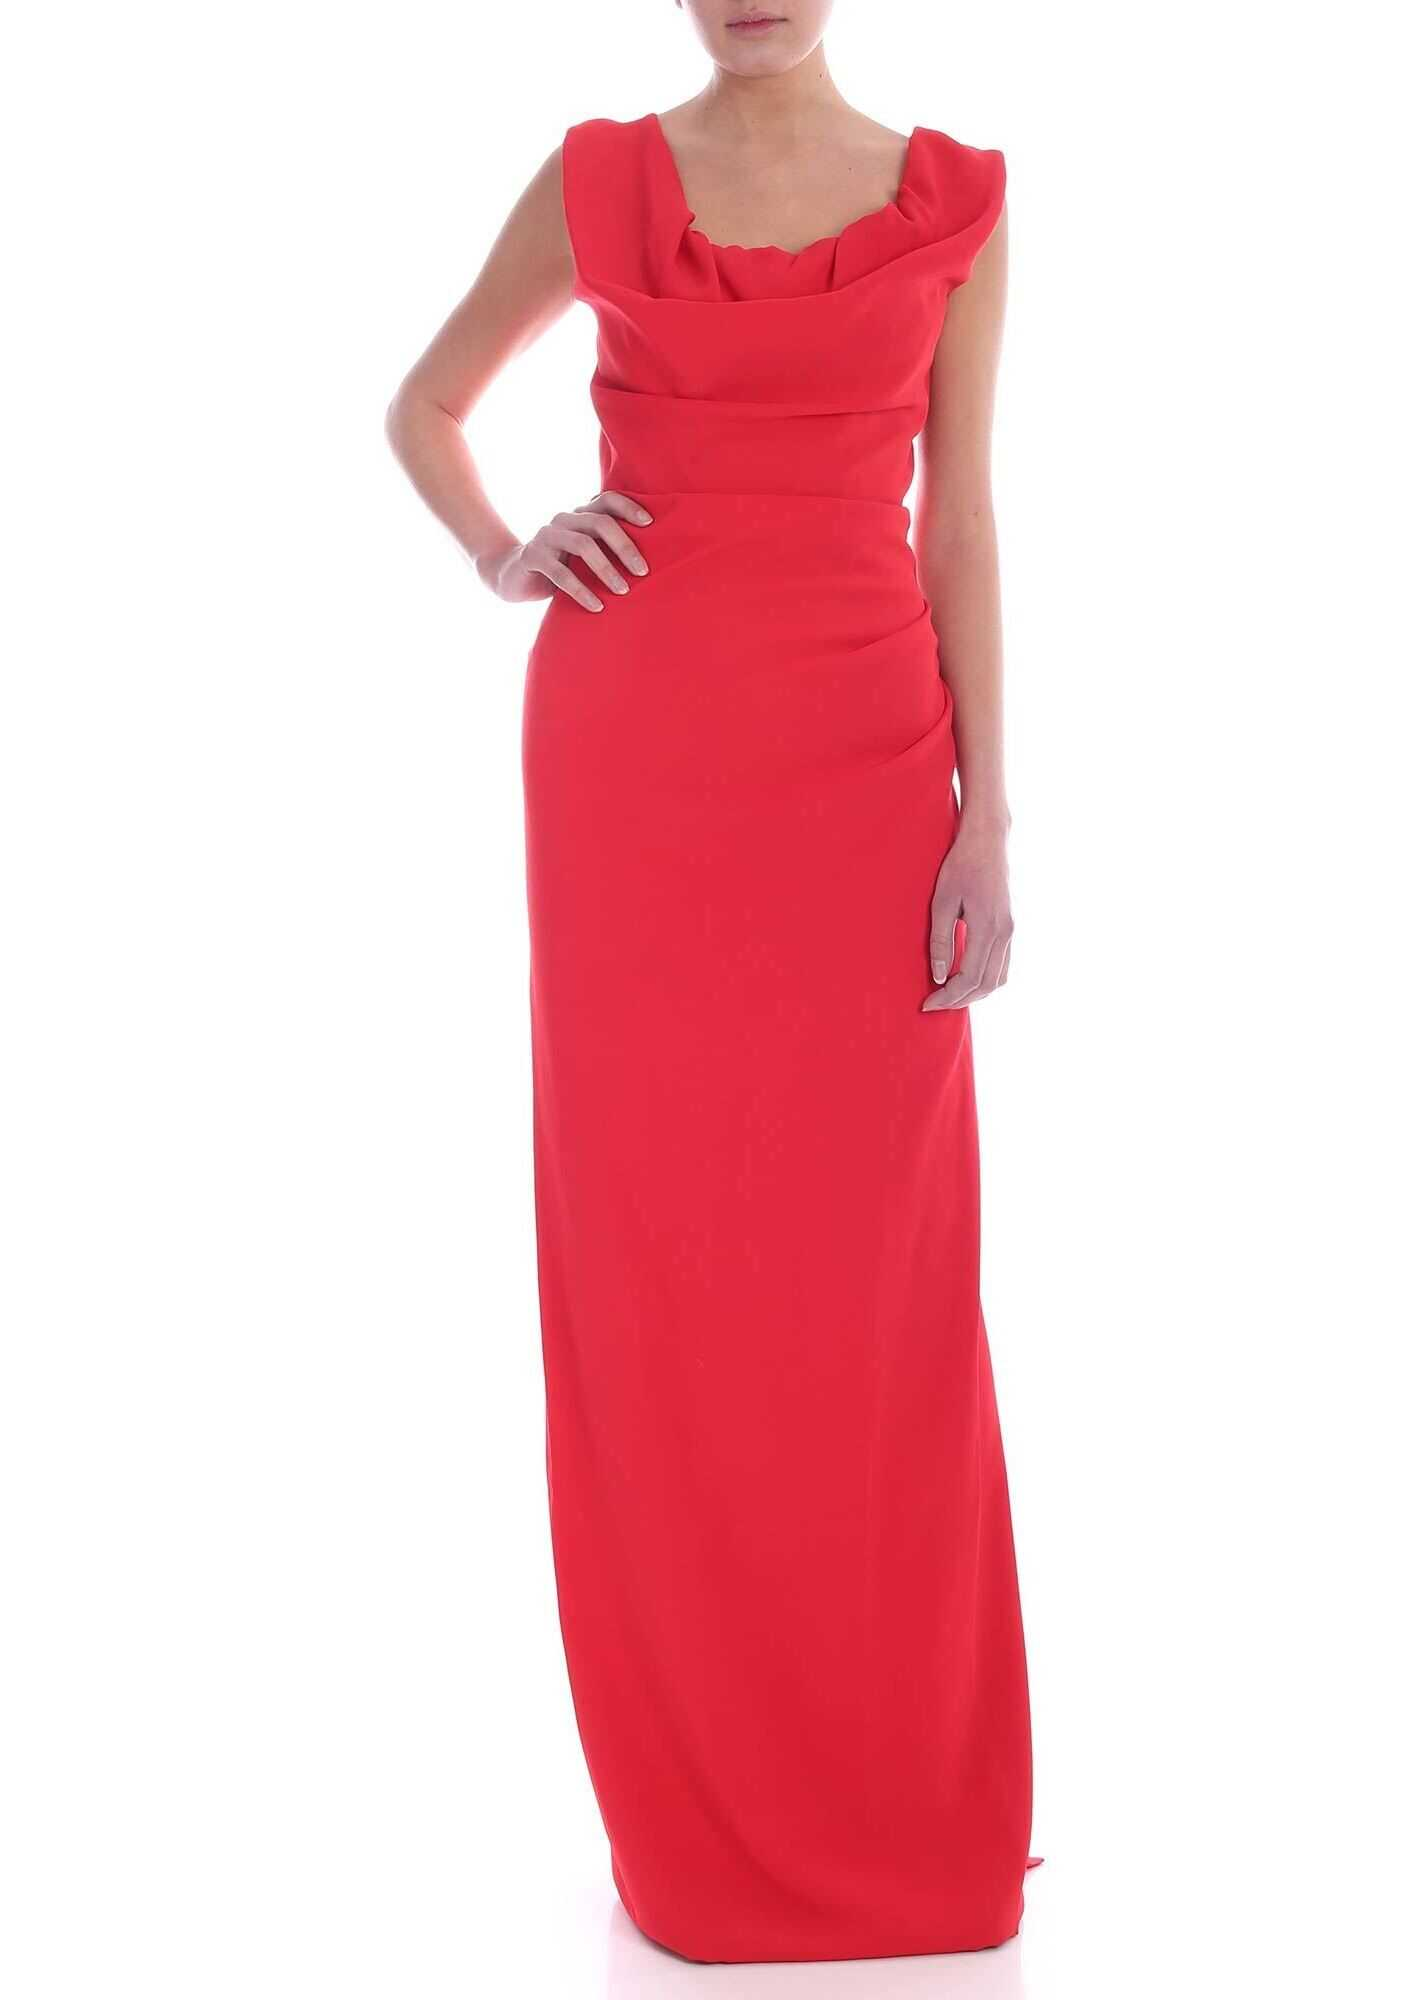 Drapery Dress In Red thumbnail